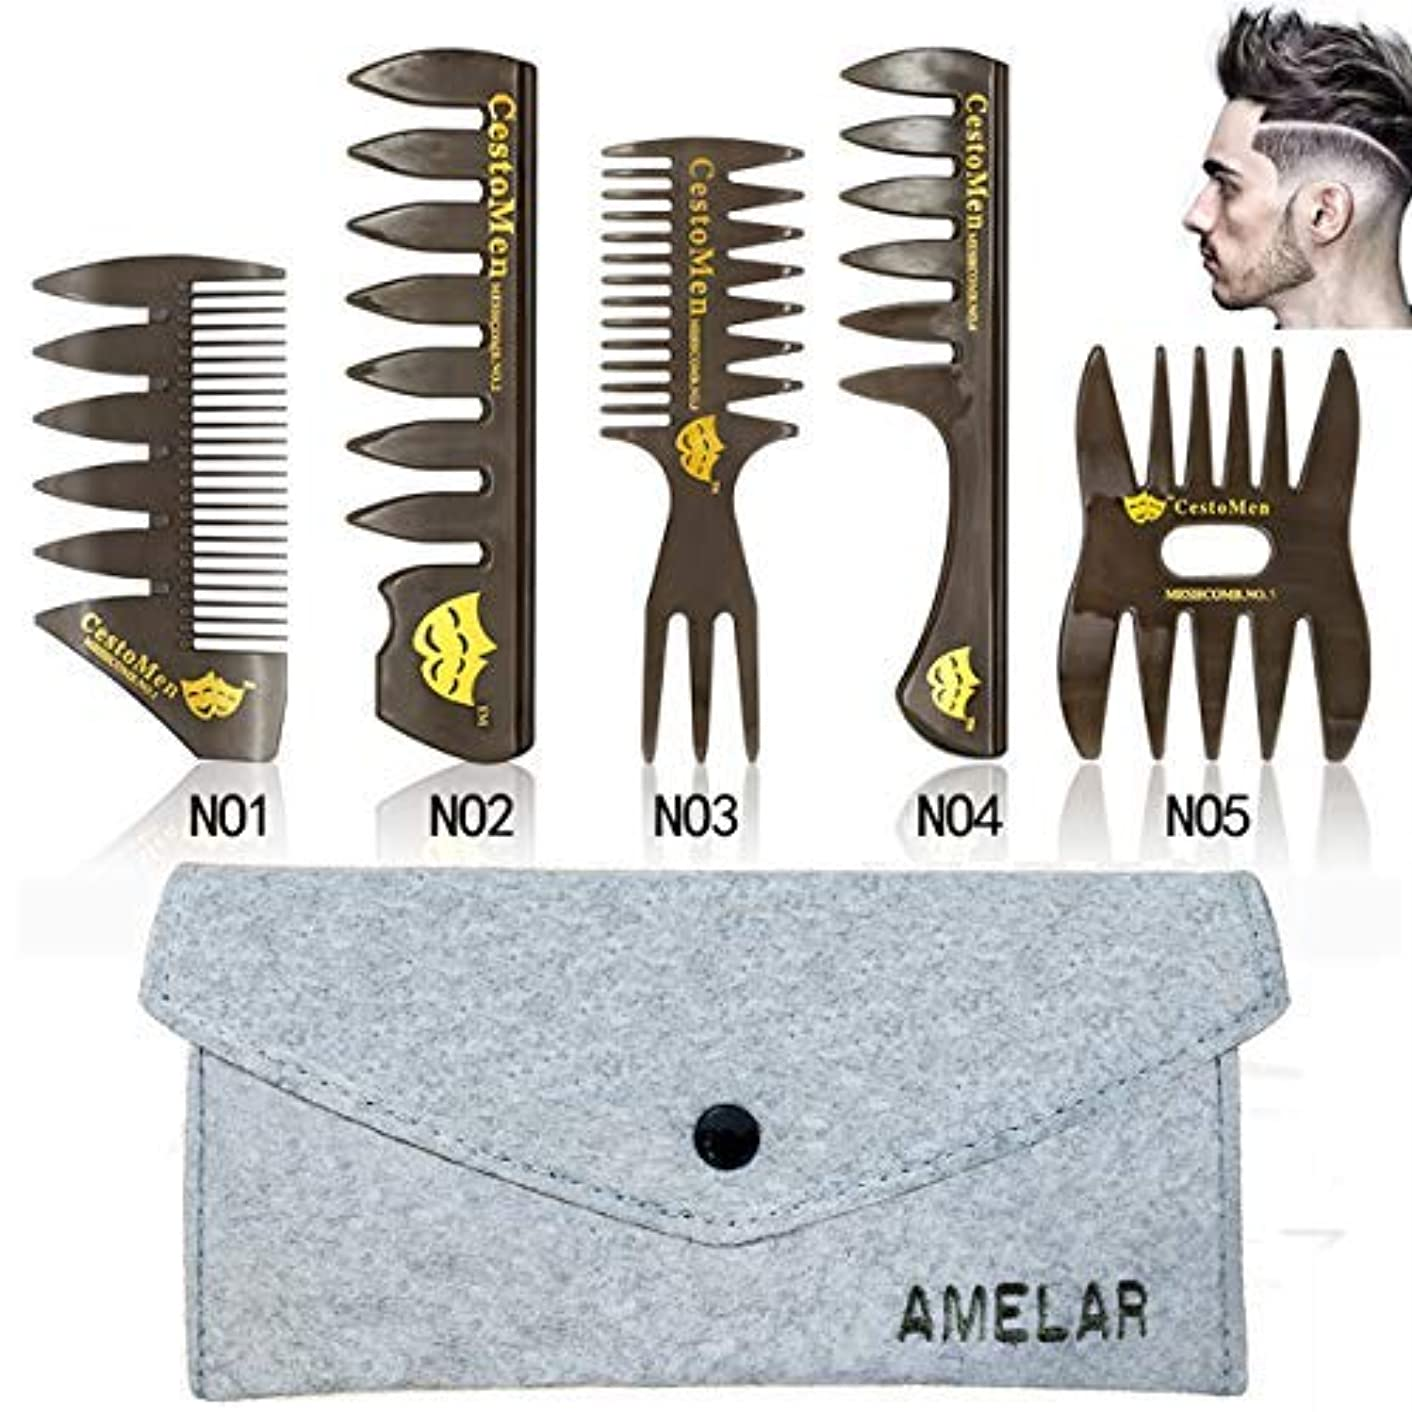 ファーザーファージュ合わせて楽しい6 PCS Hair Comb Styling Set Barber Hairstylist Accessories,Professional Shaping & Wet Pick Barber Brush Tools,...